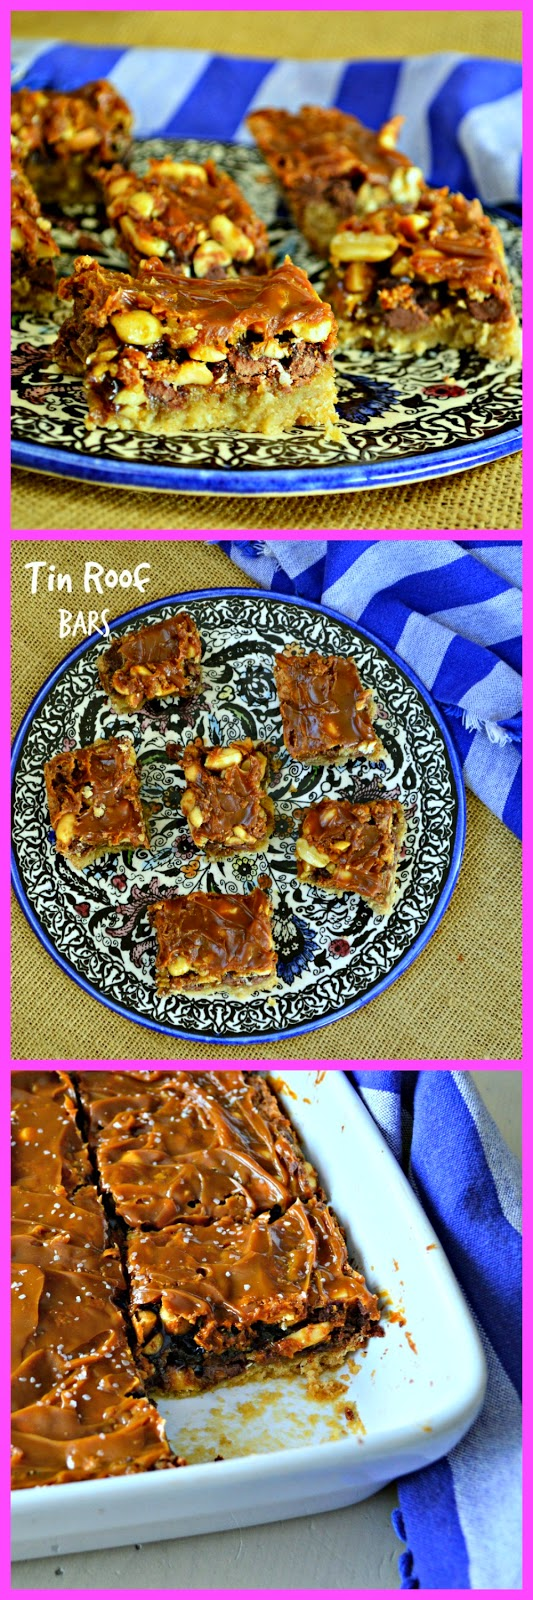 This Is How I Cook Tin Roof Chocolate Peanut Bars And